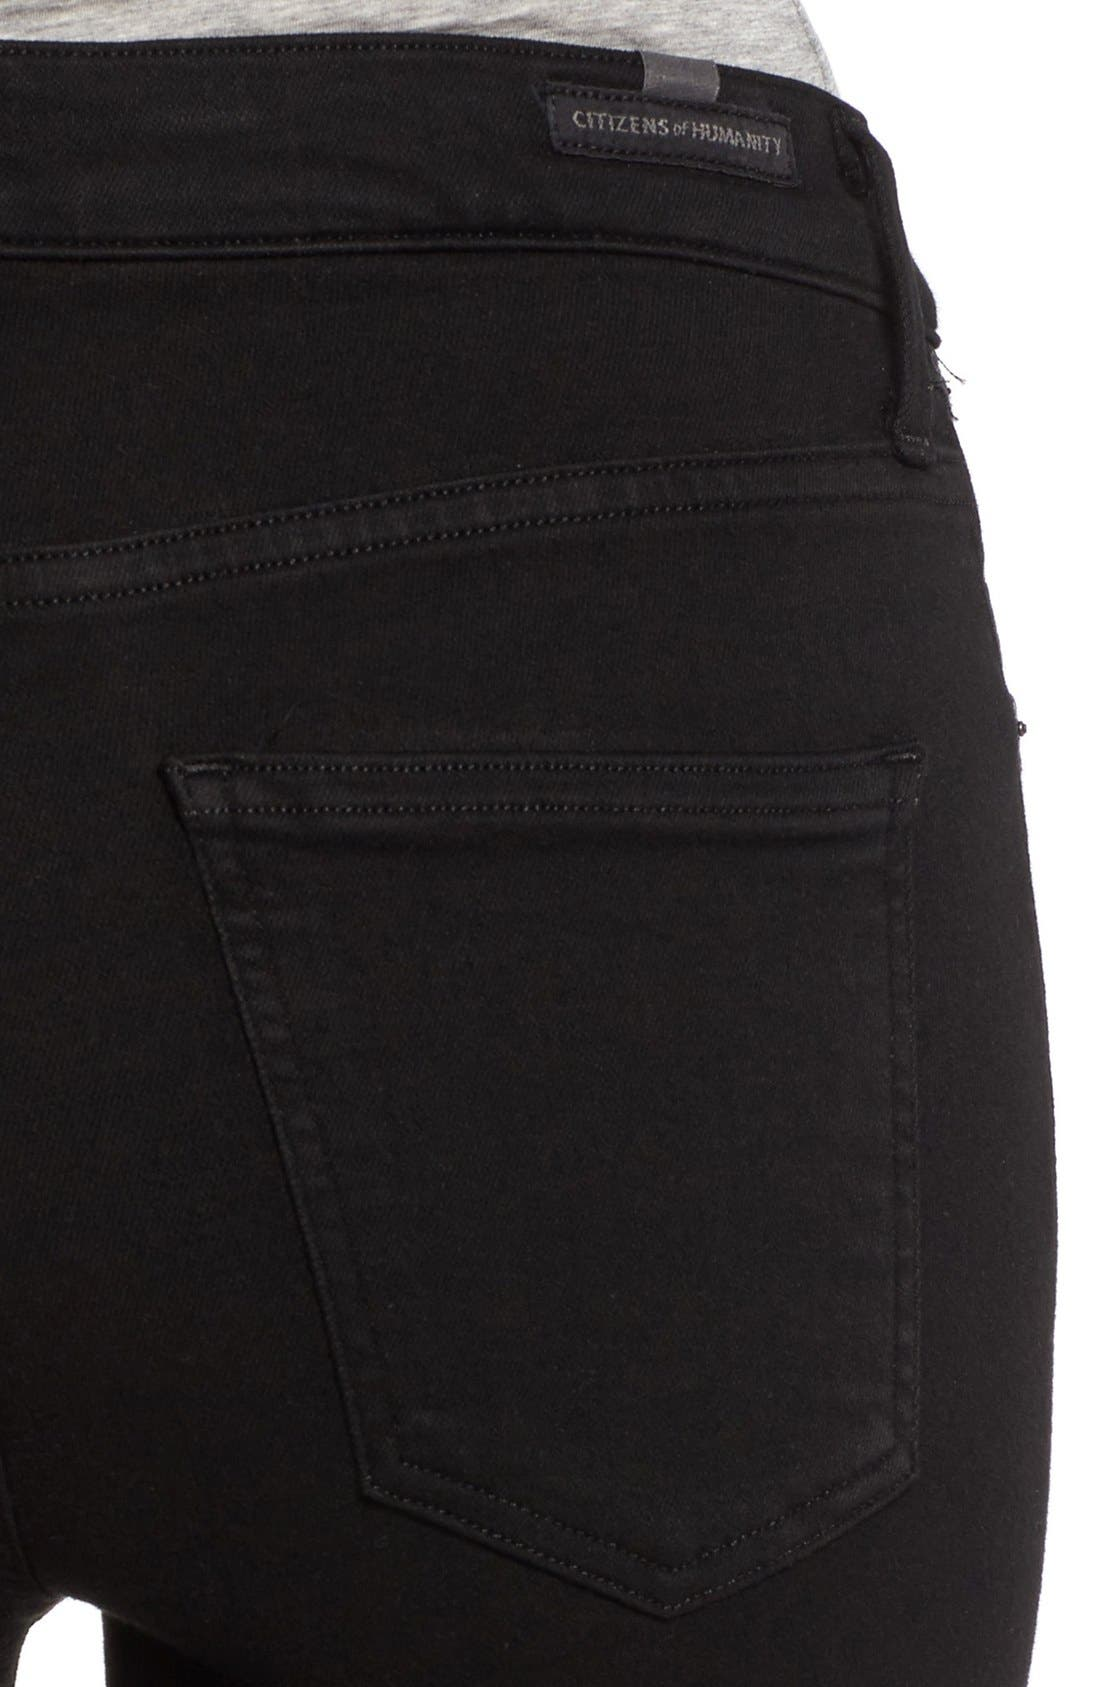 Rocket High Rise Crop Skinny Jeans,                             Alternate thumbnail 4, color,                             All Black